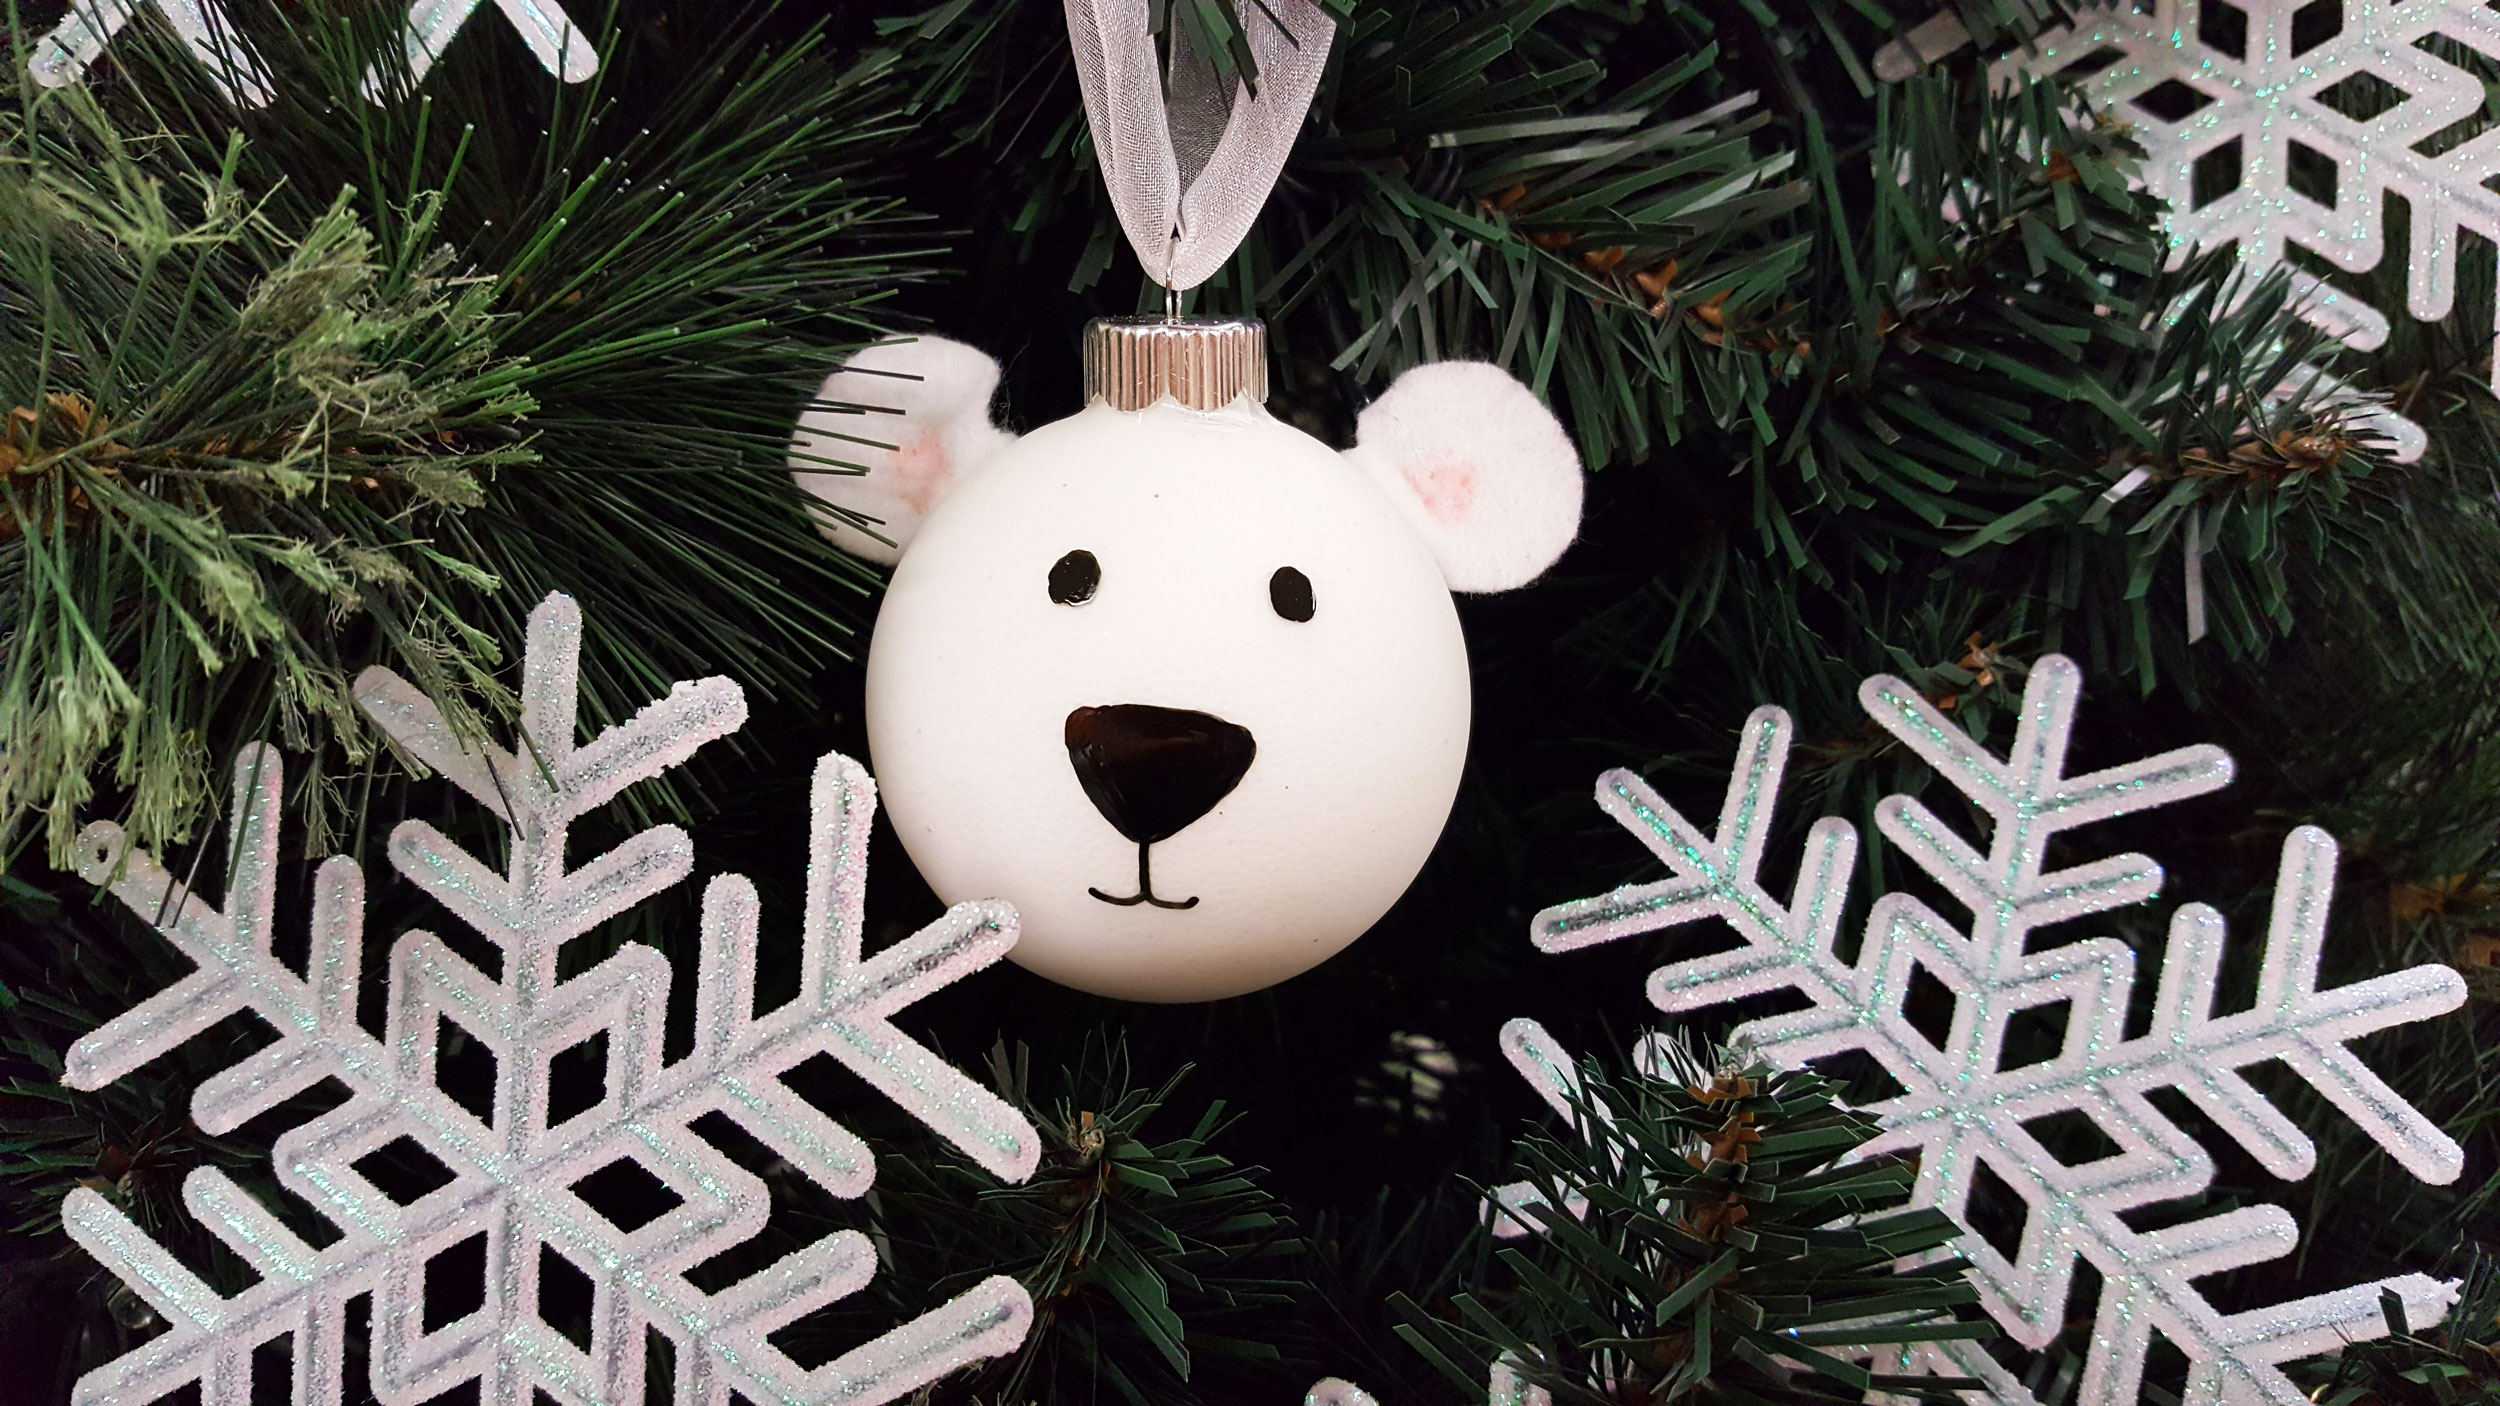 a white DIY polar bear ornament made from a bauble ornament and hiding in a tree behind giant snowflakes. | OrnamentShop.com